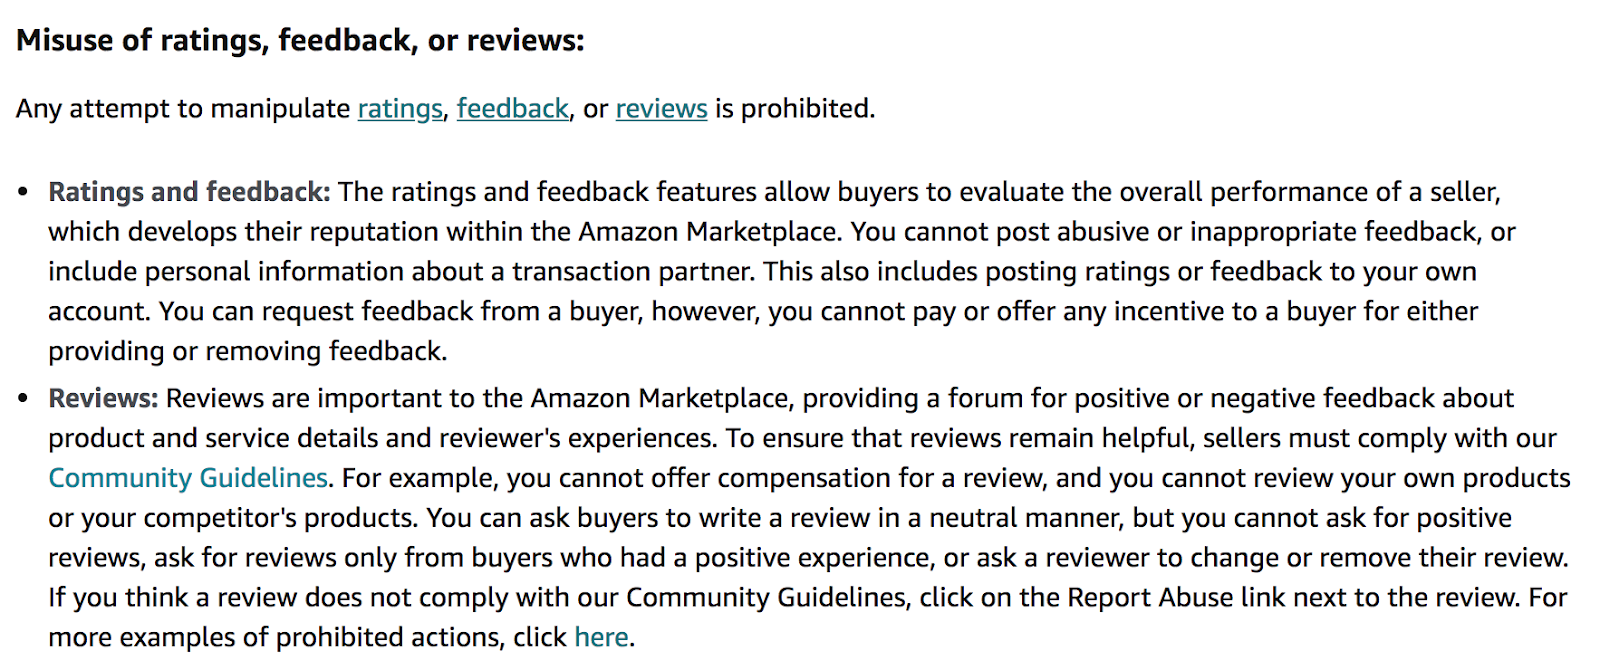 How to Get Reviews on Amazon - 9 Proven Tips